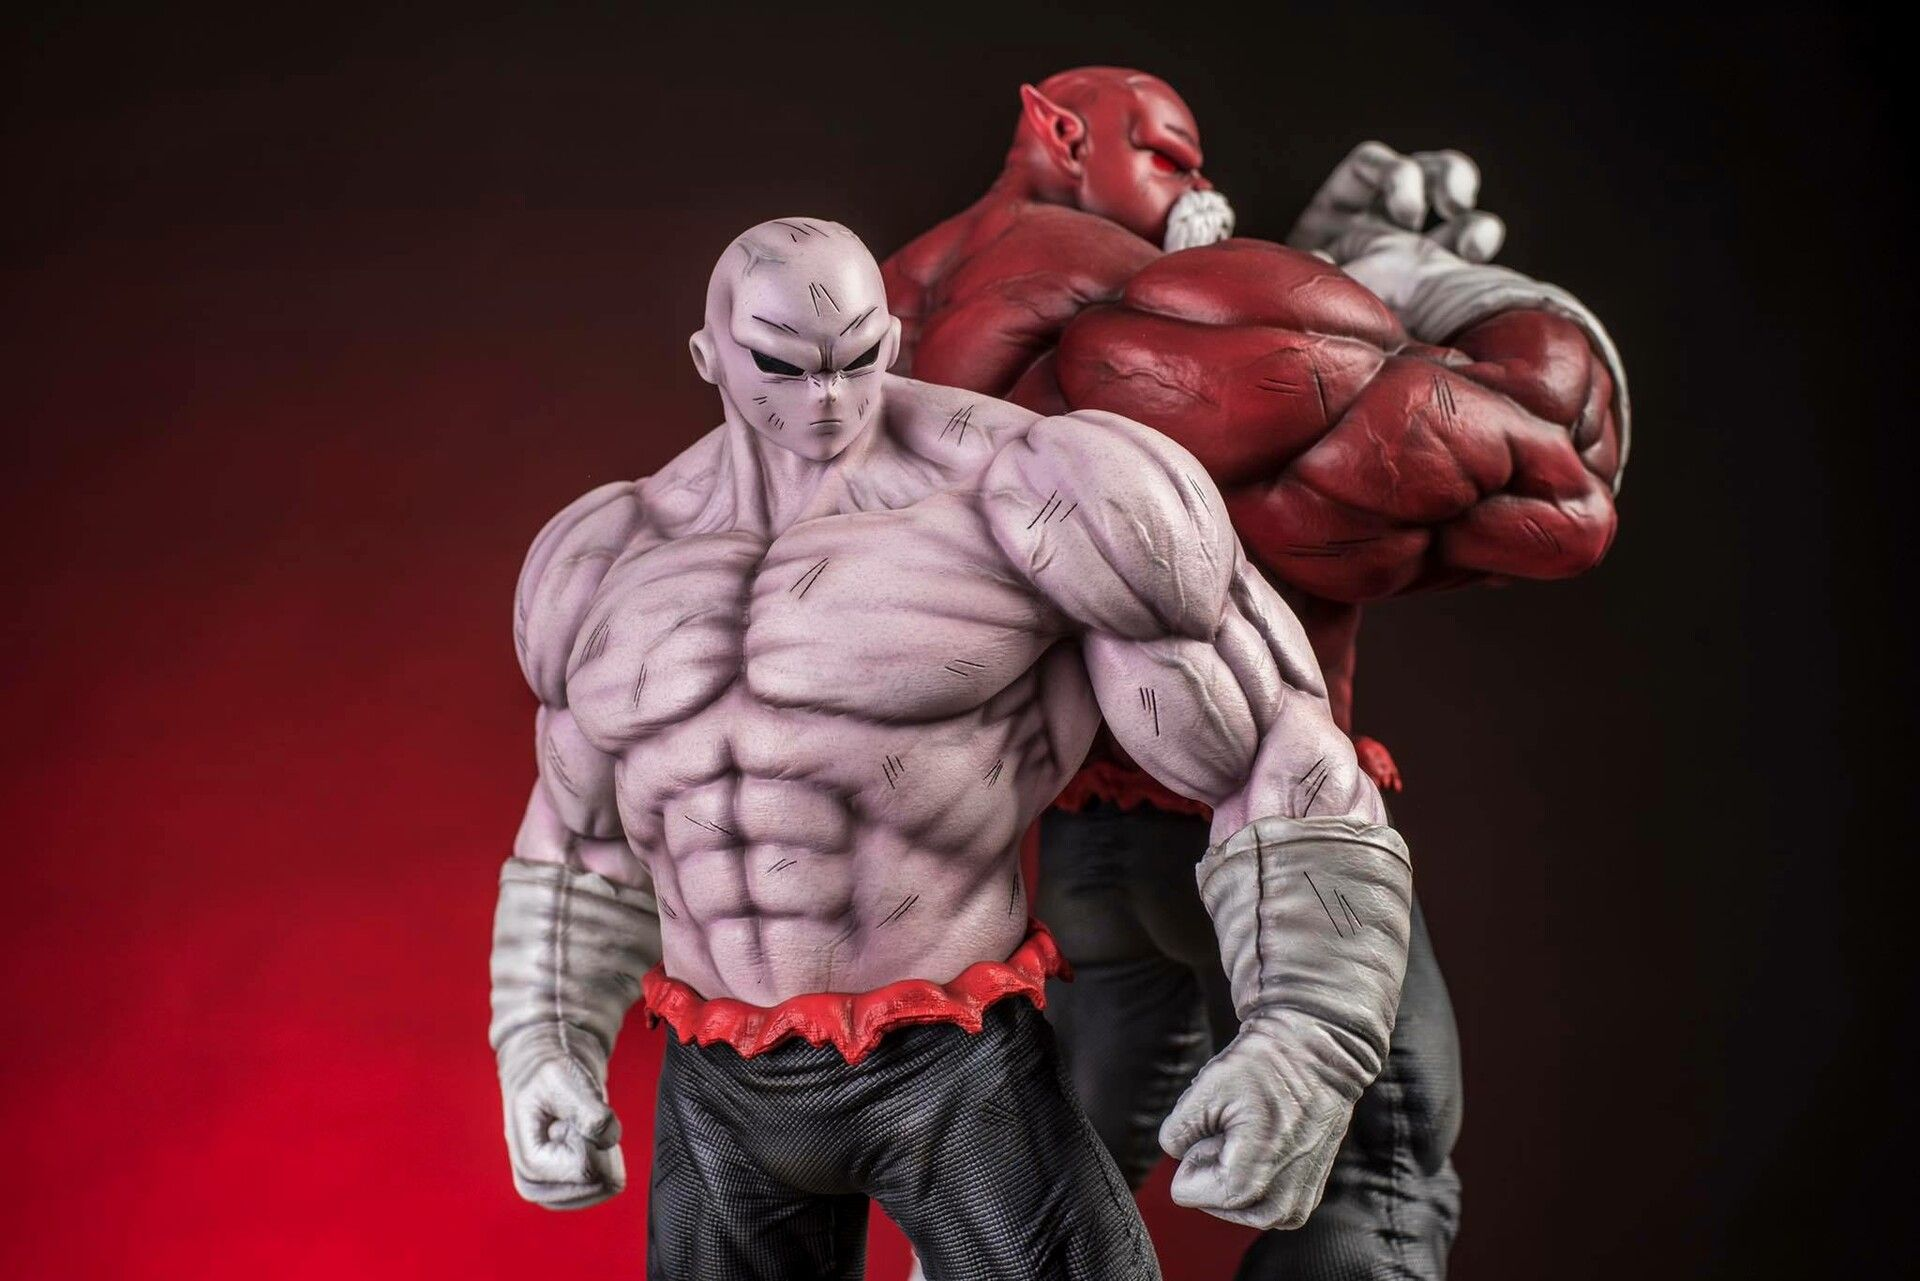 Jiren And Toppo 1 4 Statue By Leandro Martinezhi Here Is A Statue That I Sculpted For Noah Studio I Dragon Ball Artwork Dragon Ball Wallpapers Dragon Ball Art